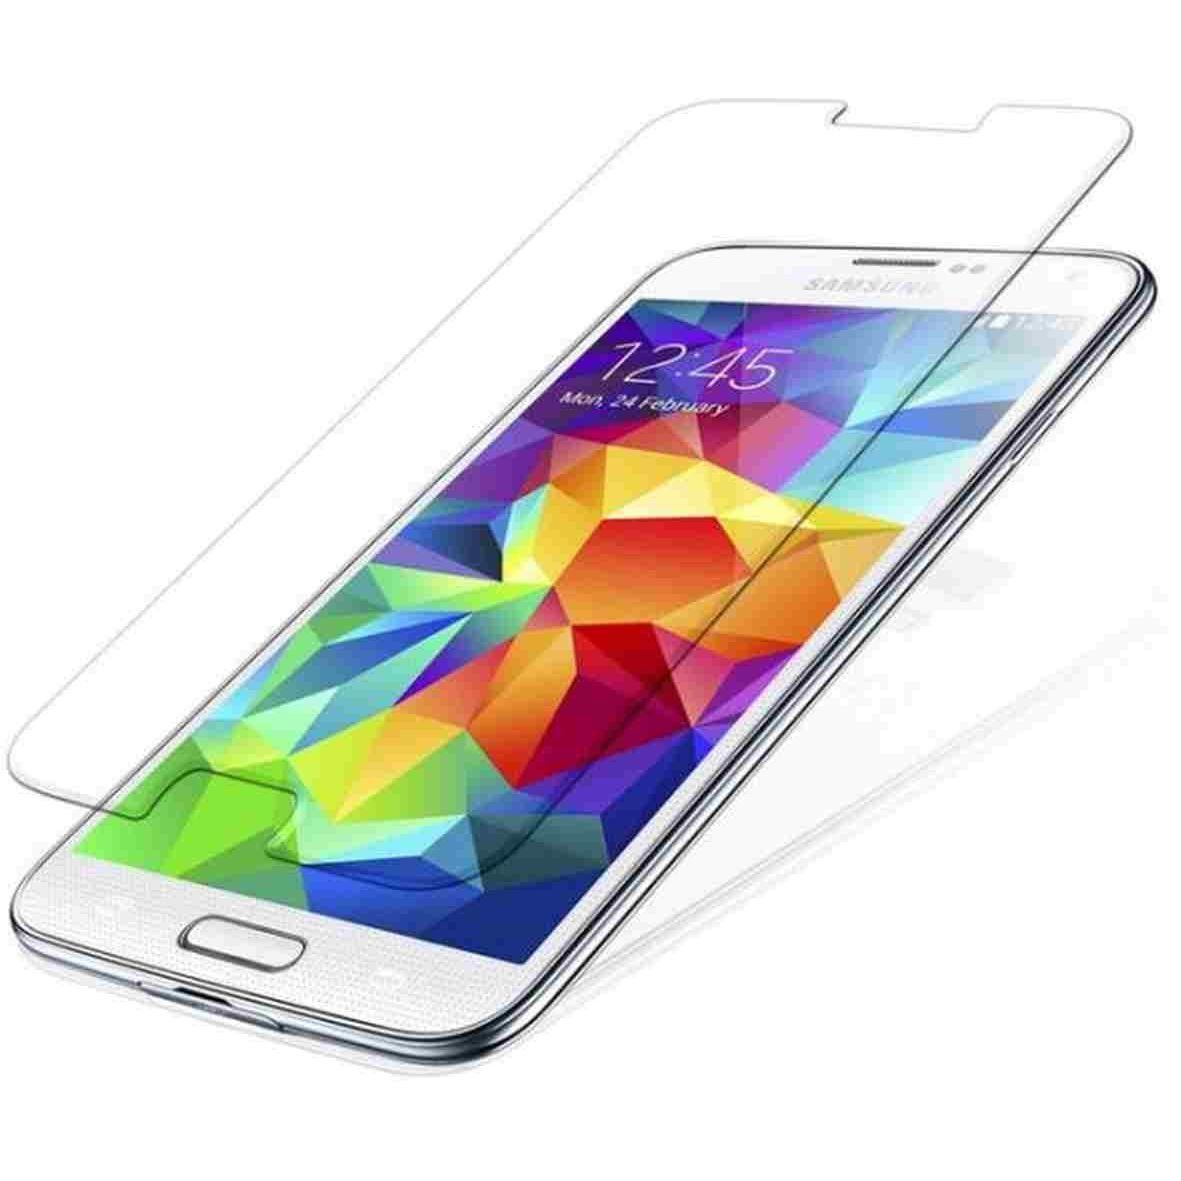 Oppo F1s A1601 Ultra Thin Curve Edges Tempered Glass Screen Protector Full Layar Samsung E5